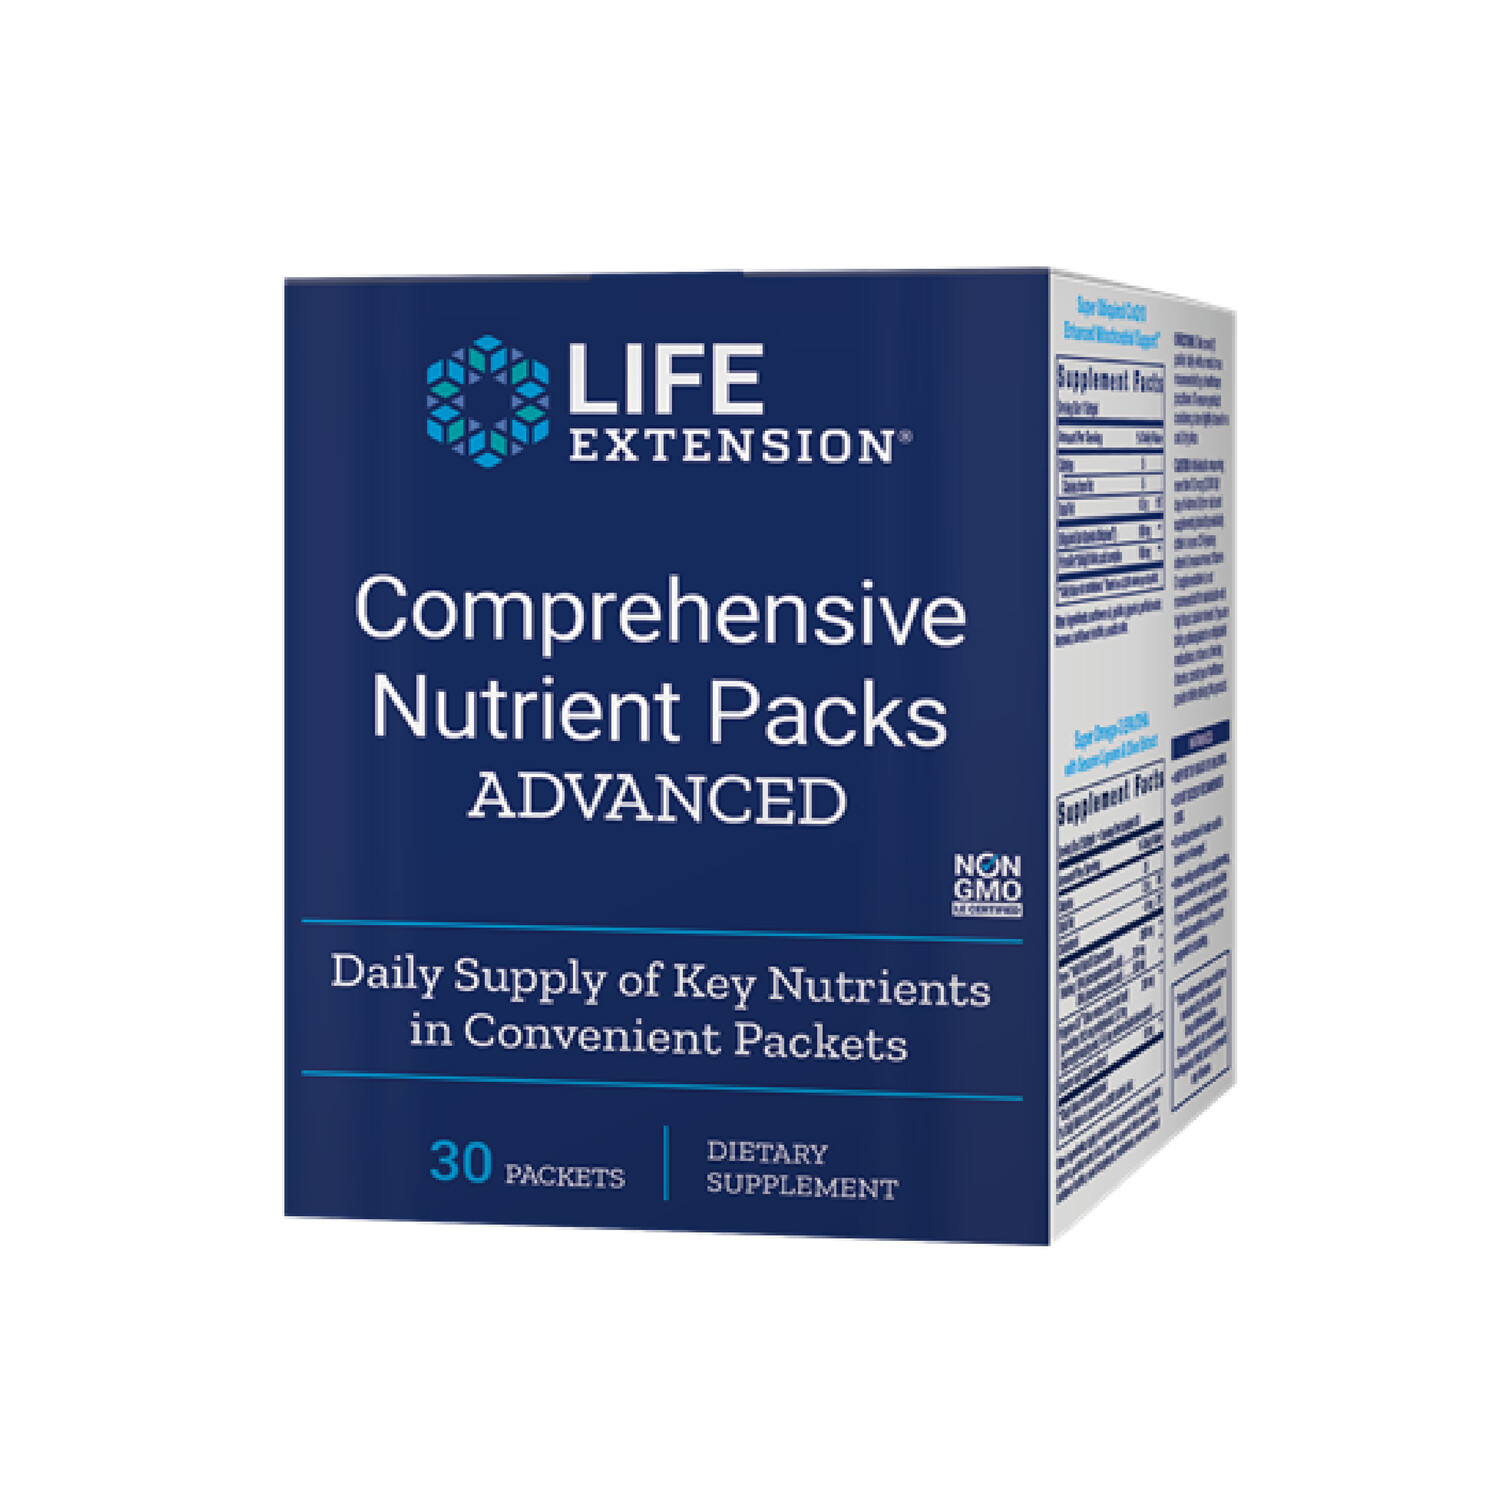 Comprehensive Nutrient Packs Advanced (30 packs)